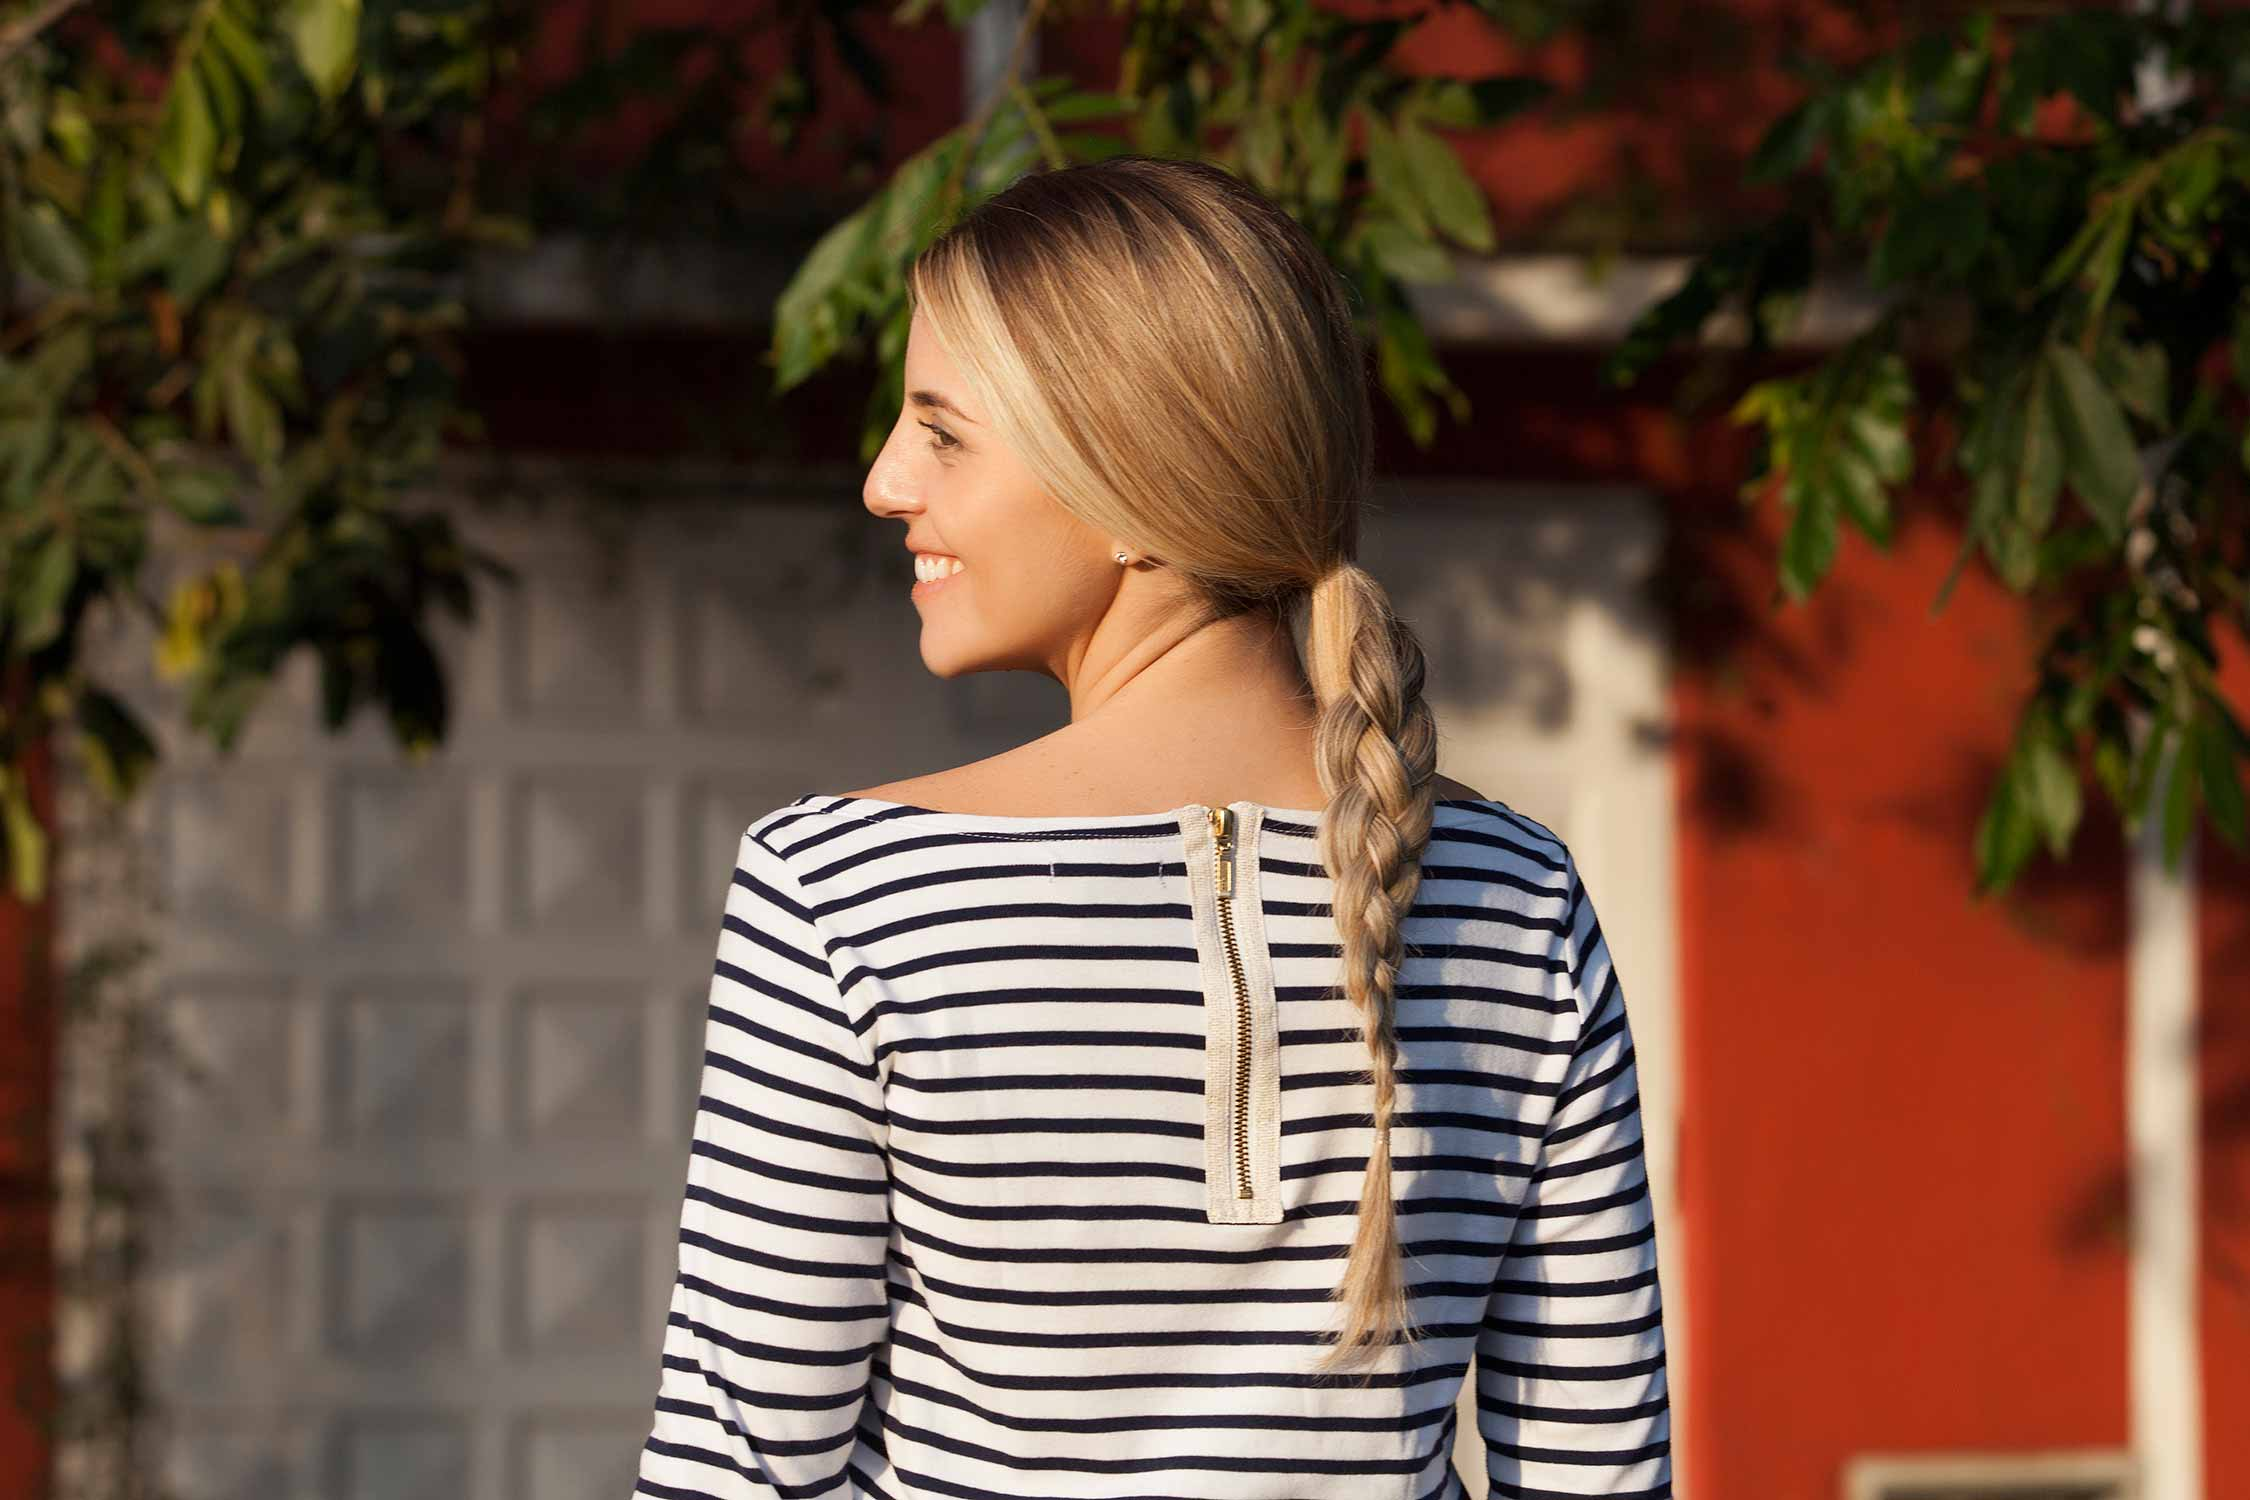 How to braid with four strands: A back view of a blonde woman with a four strand braid, wearing a stripy top and smiling